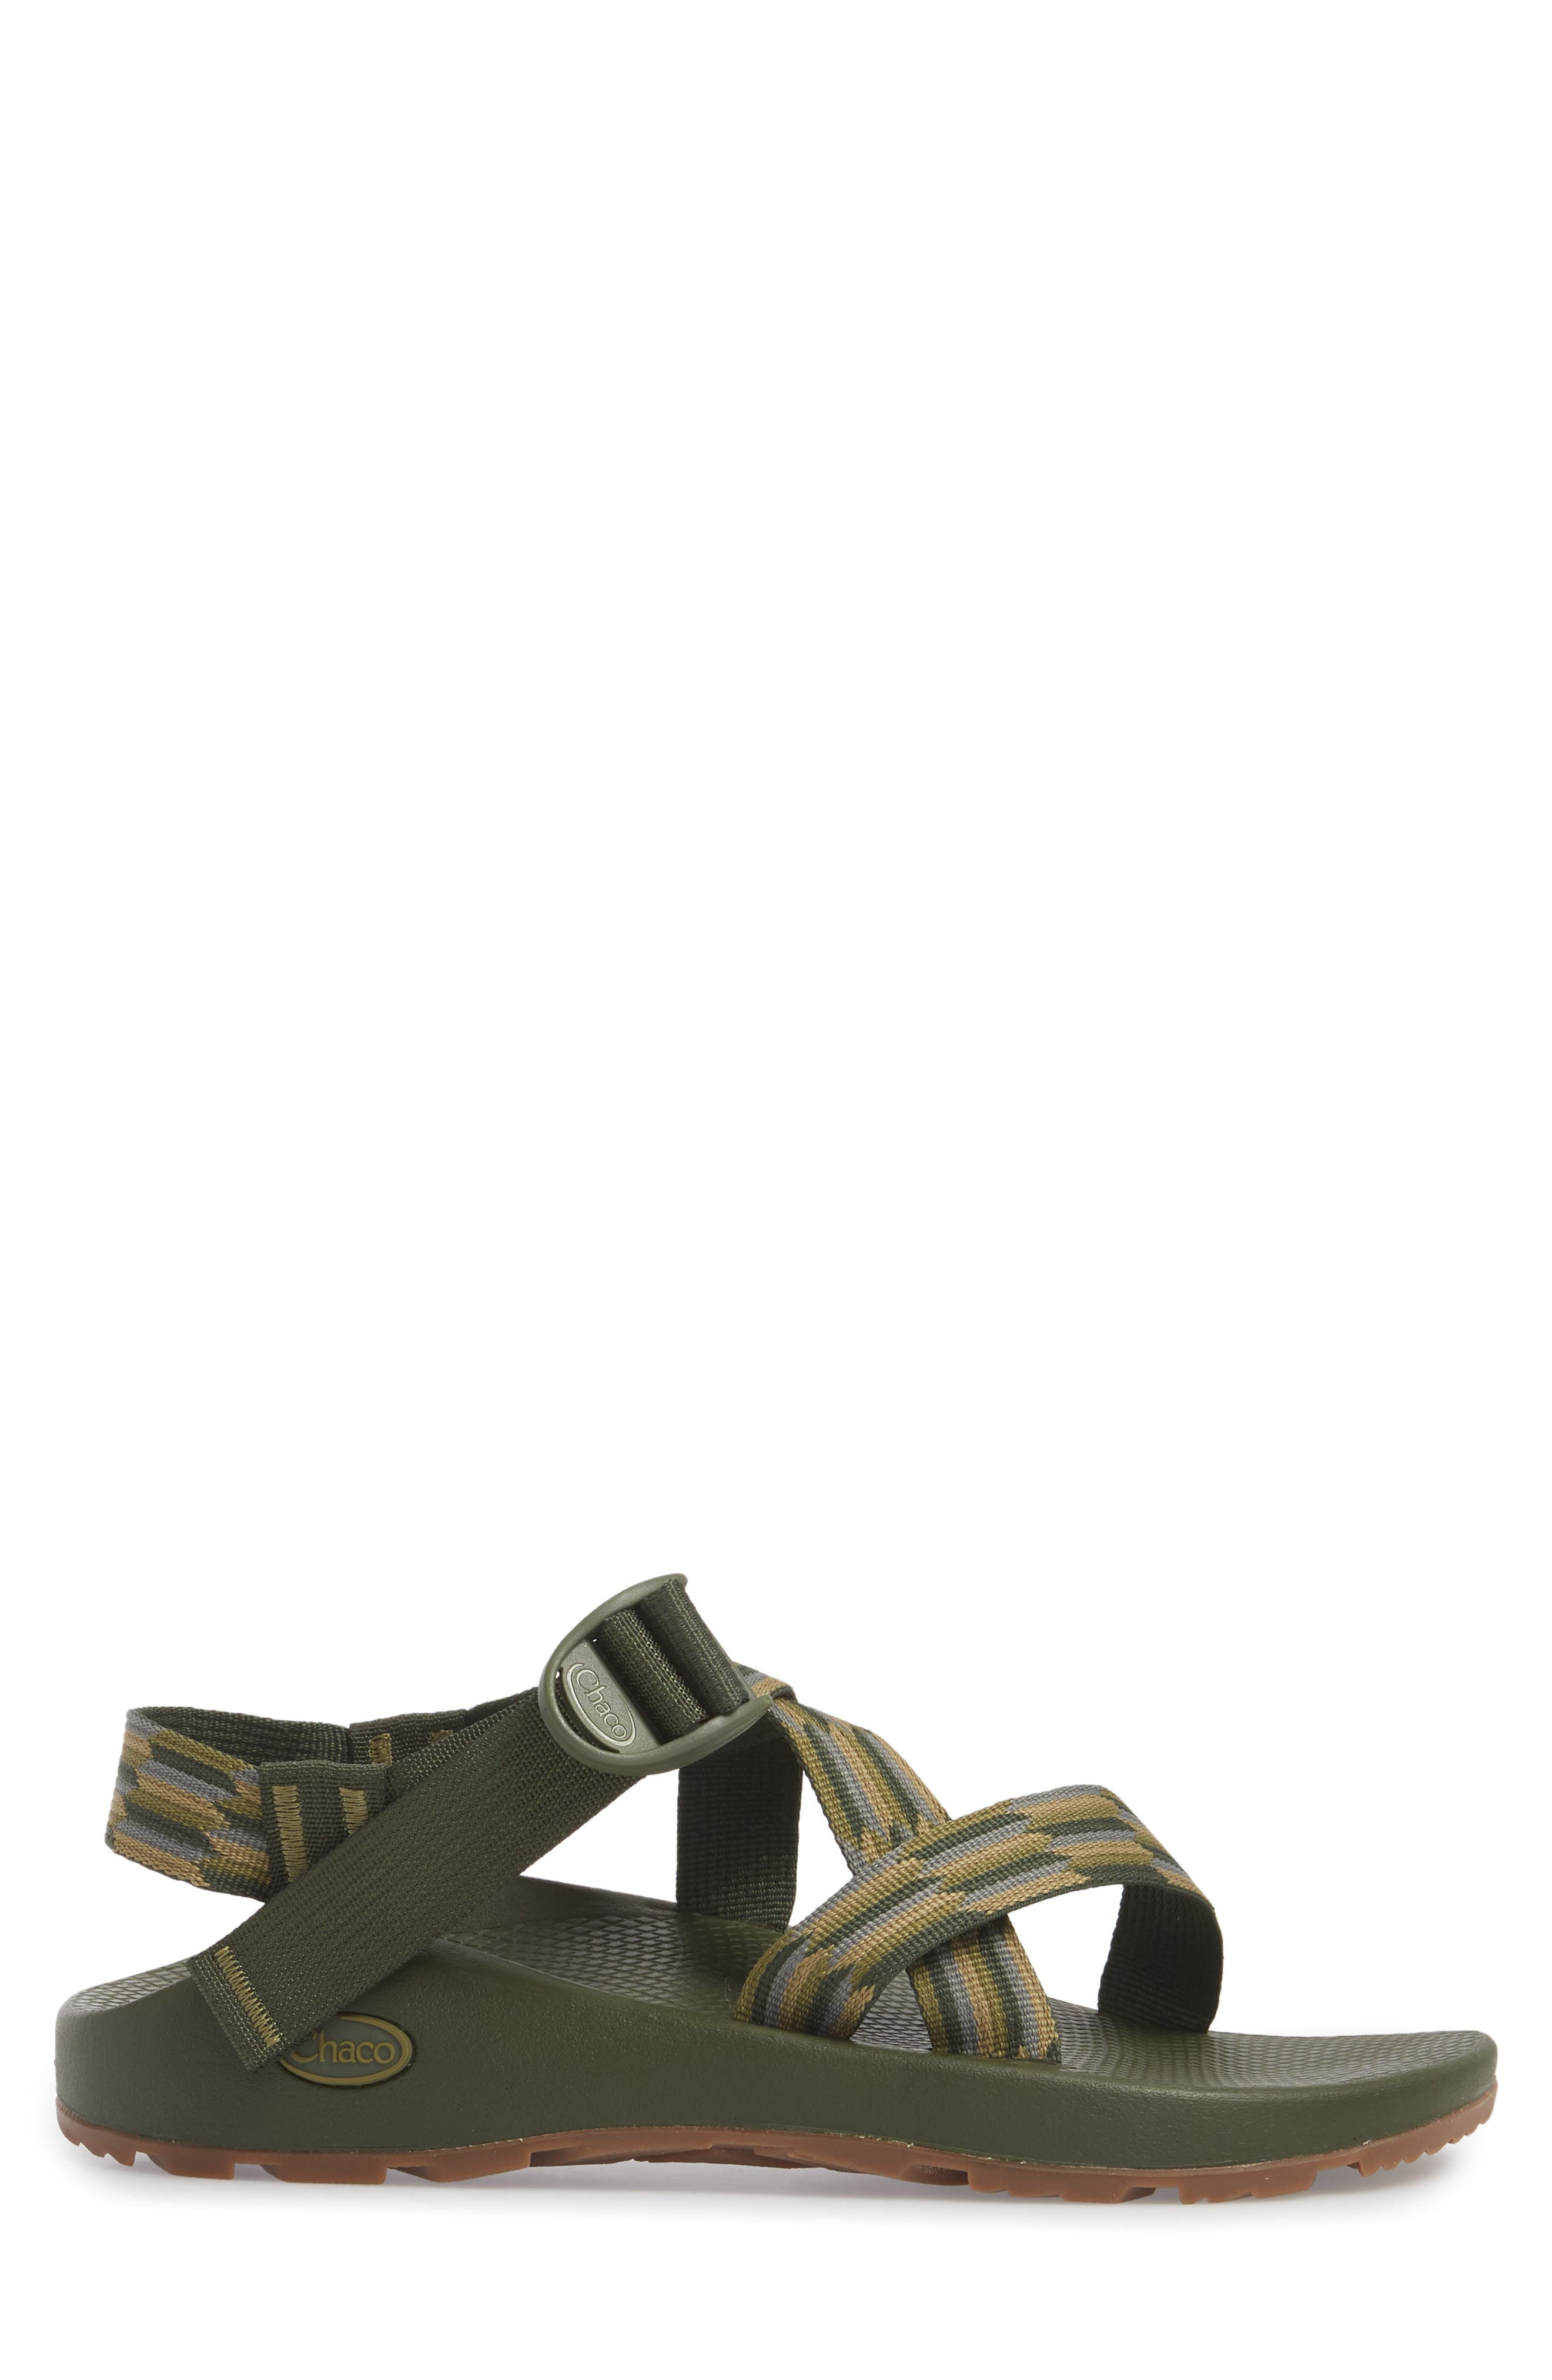 Alternate Image 3  - Chaco Z/1 Classic Sport Sandal (Men)